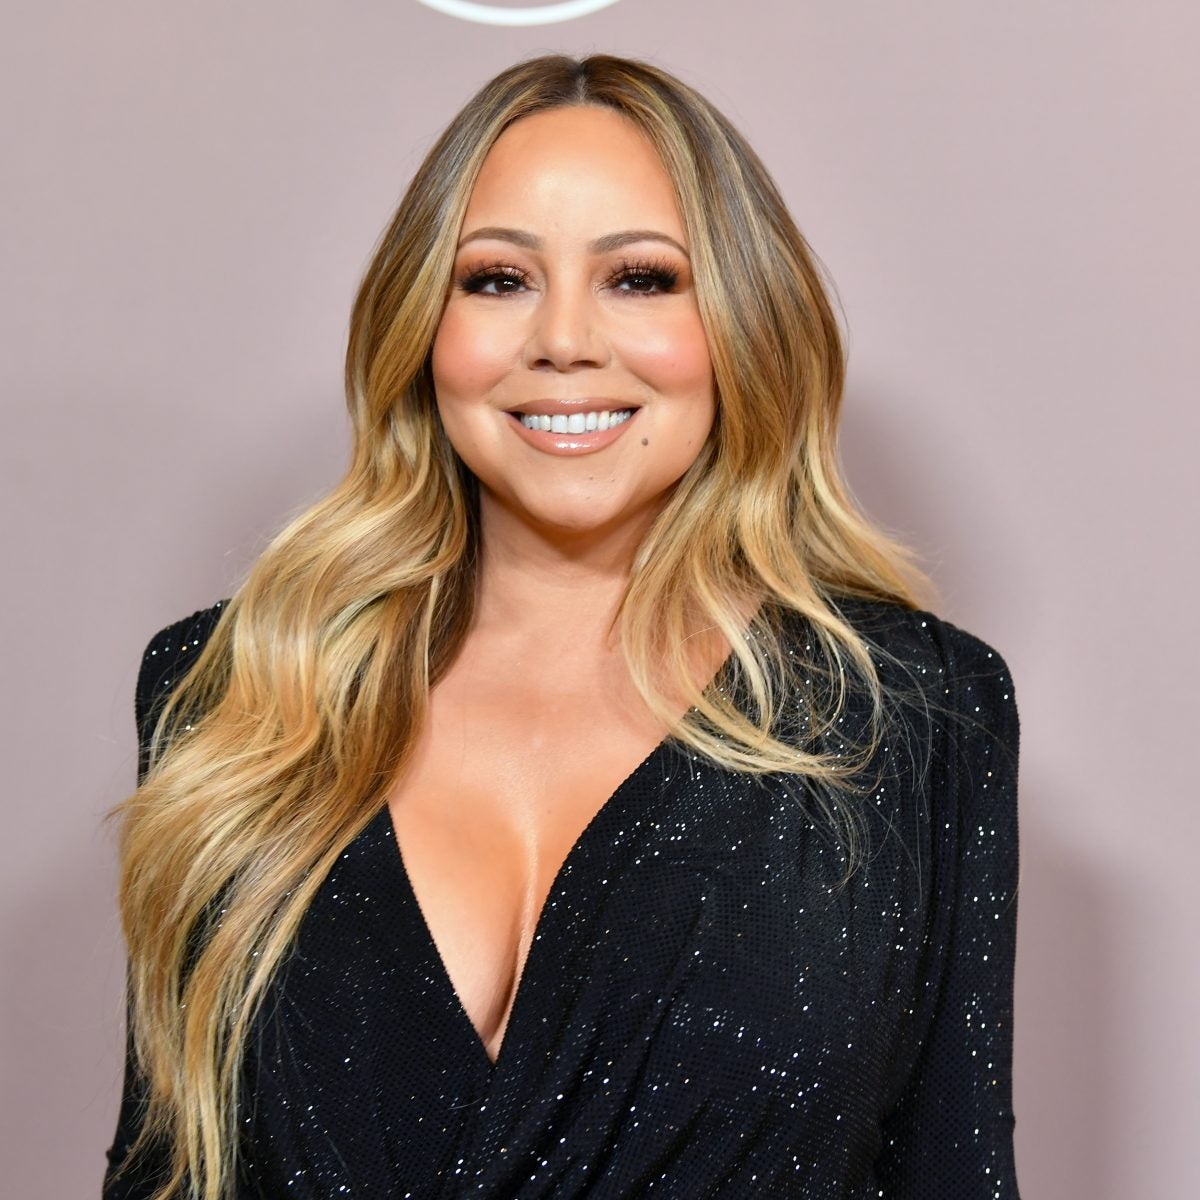 Mariah Carey To Release Memoir 'The Meaning of Mariah Carey'